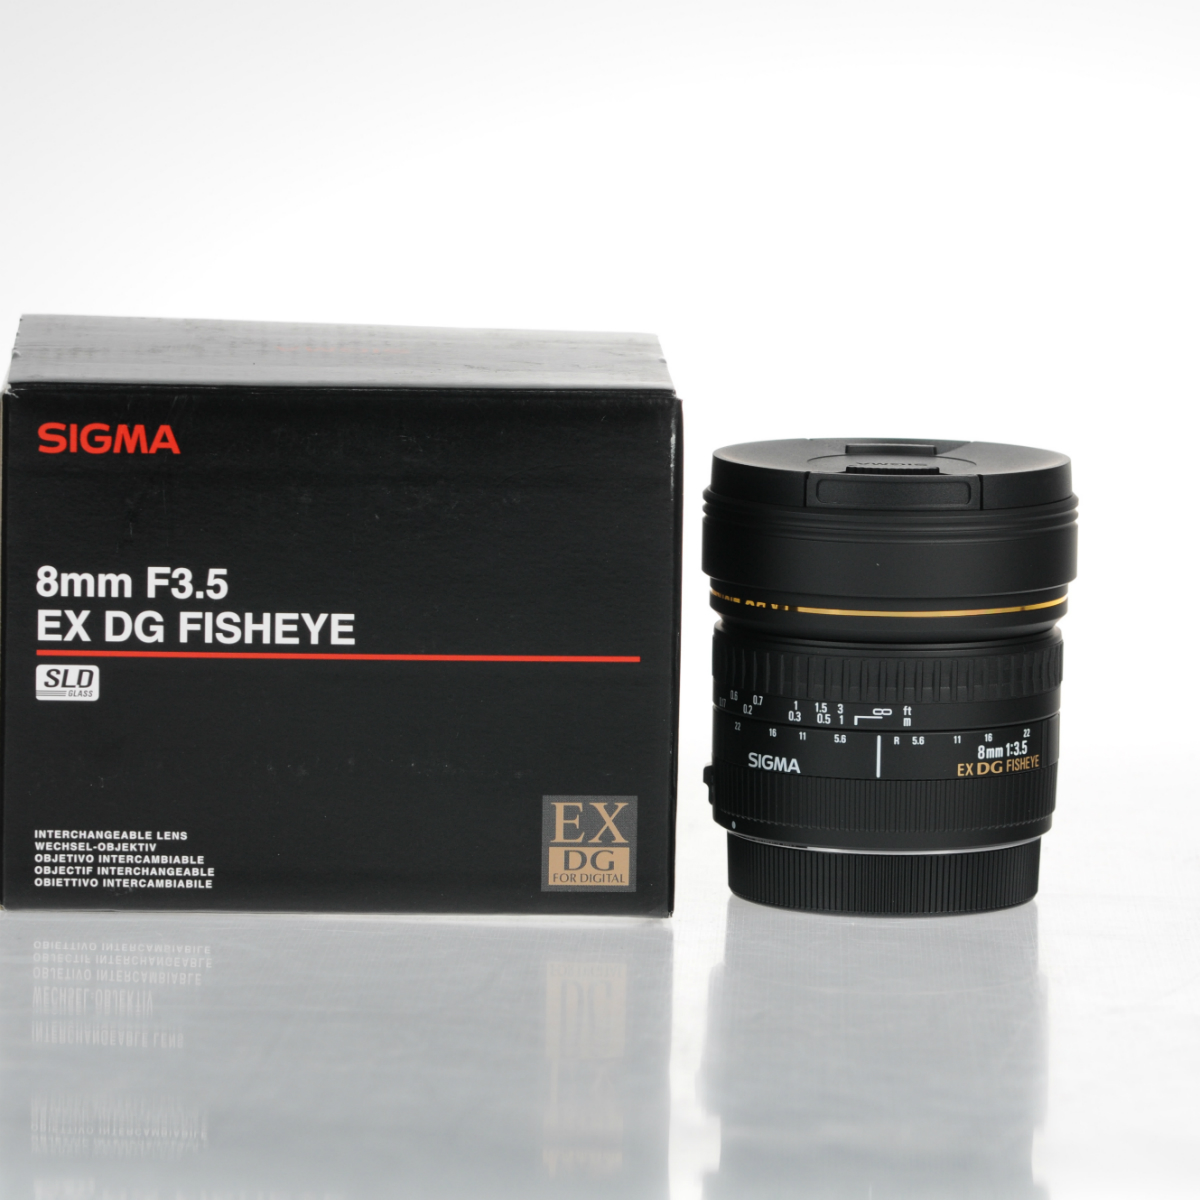 Image of Sigma 8mm f/3.5 EX DG Circular Fisheye Lens For Canon Mount